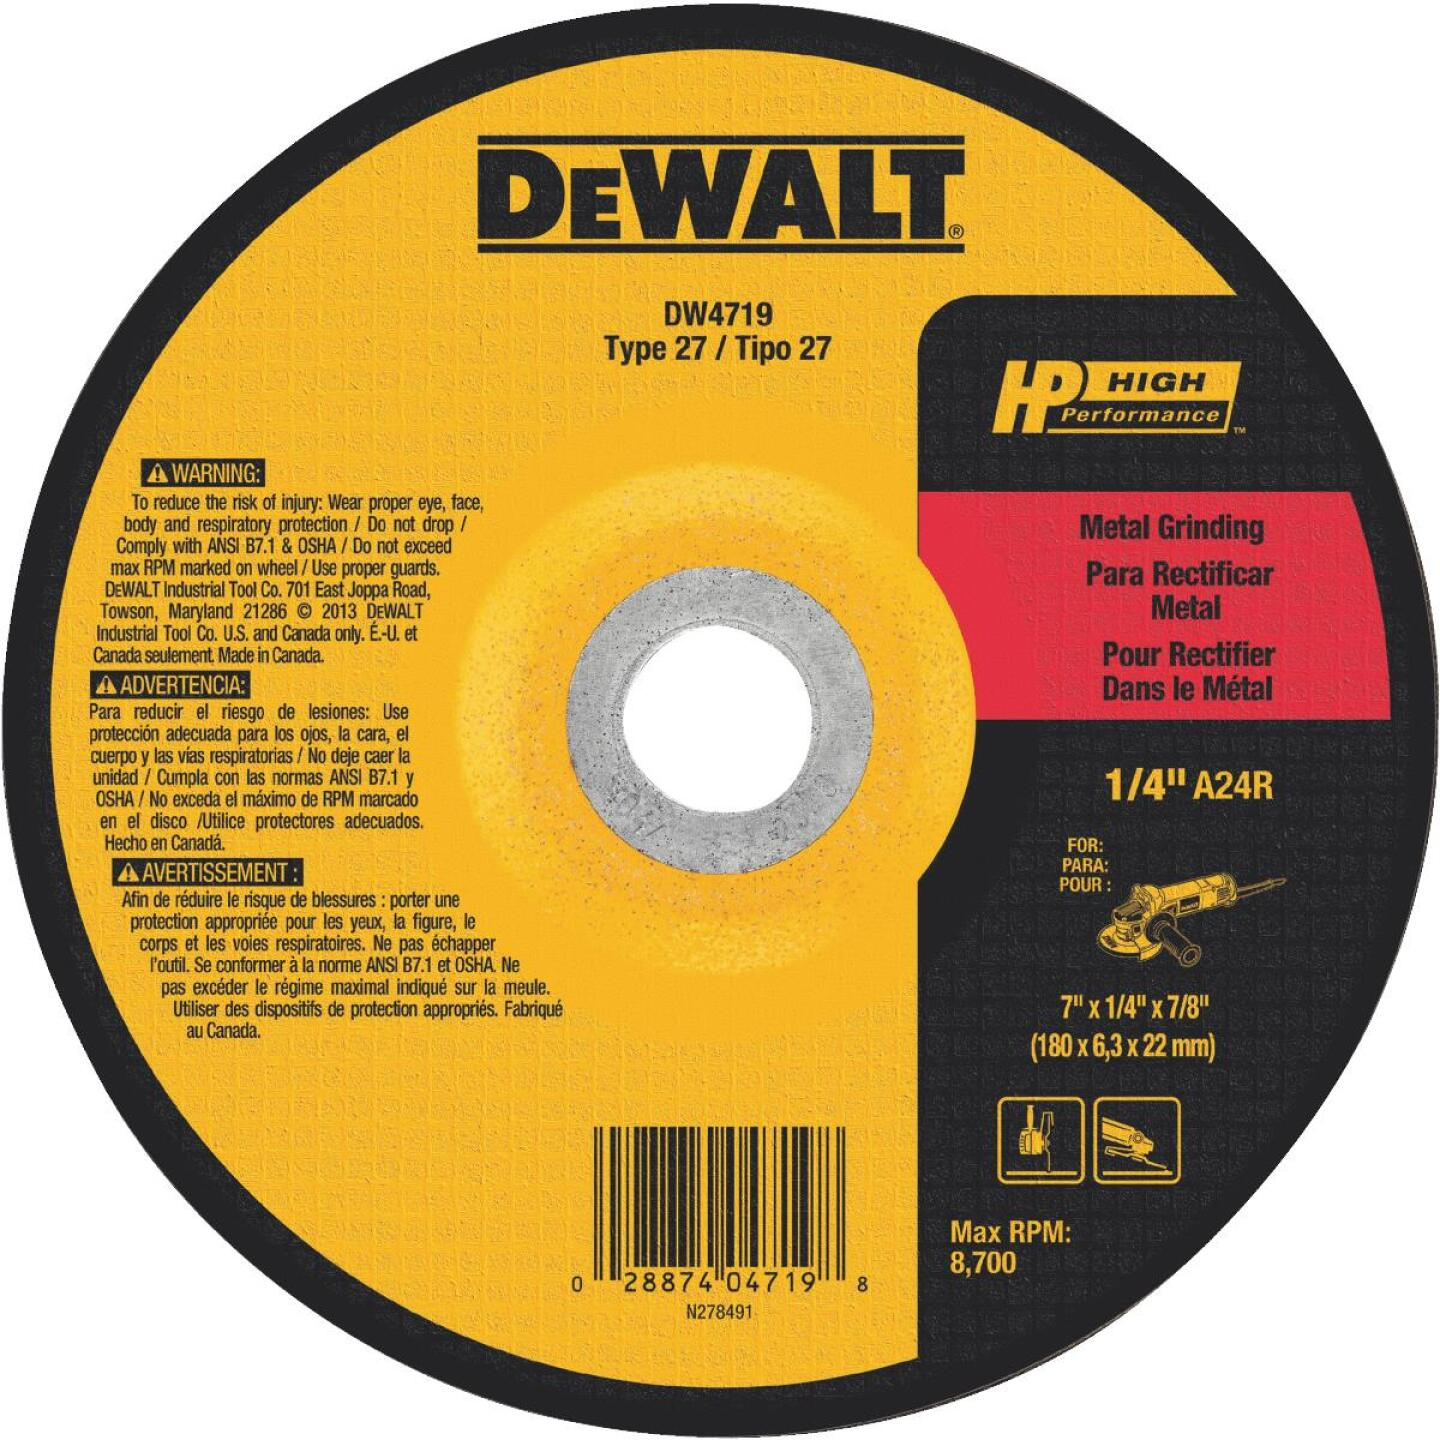 DeWalt HP Type 27 7 In. x 1/4 In. x 7/8 In. Metal Grinding Cut-Off Wheel Image 1